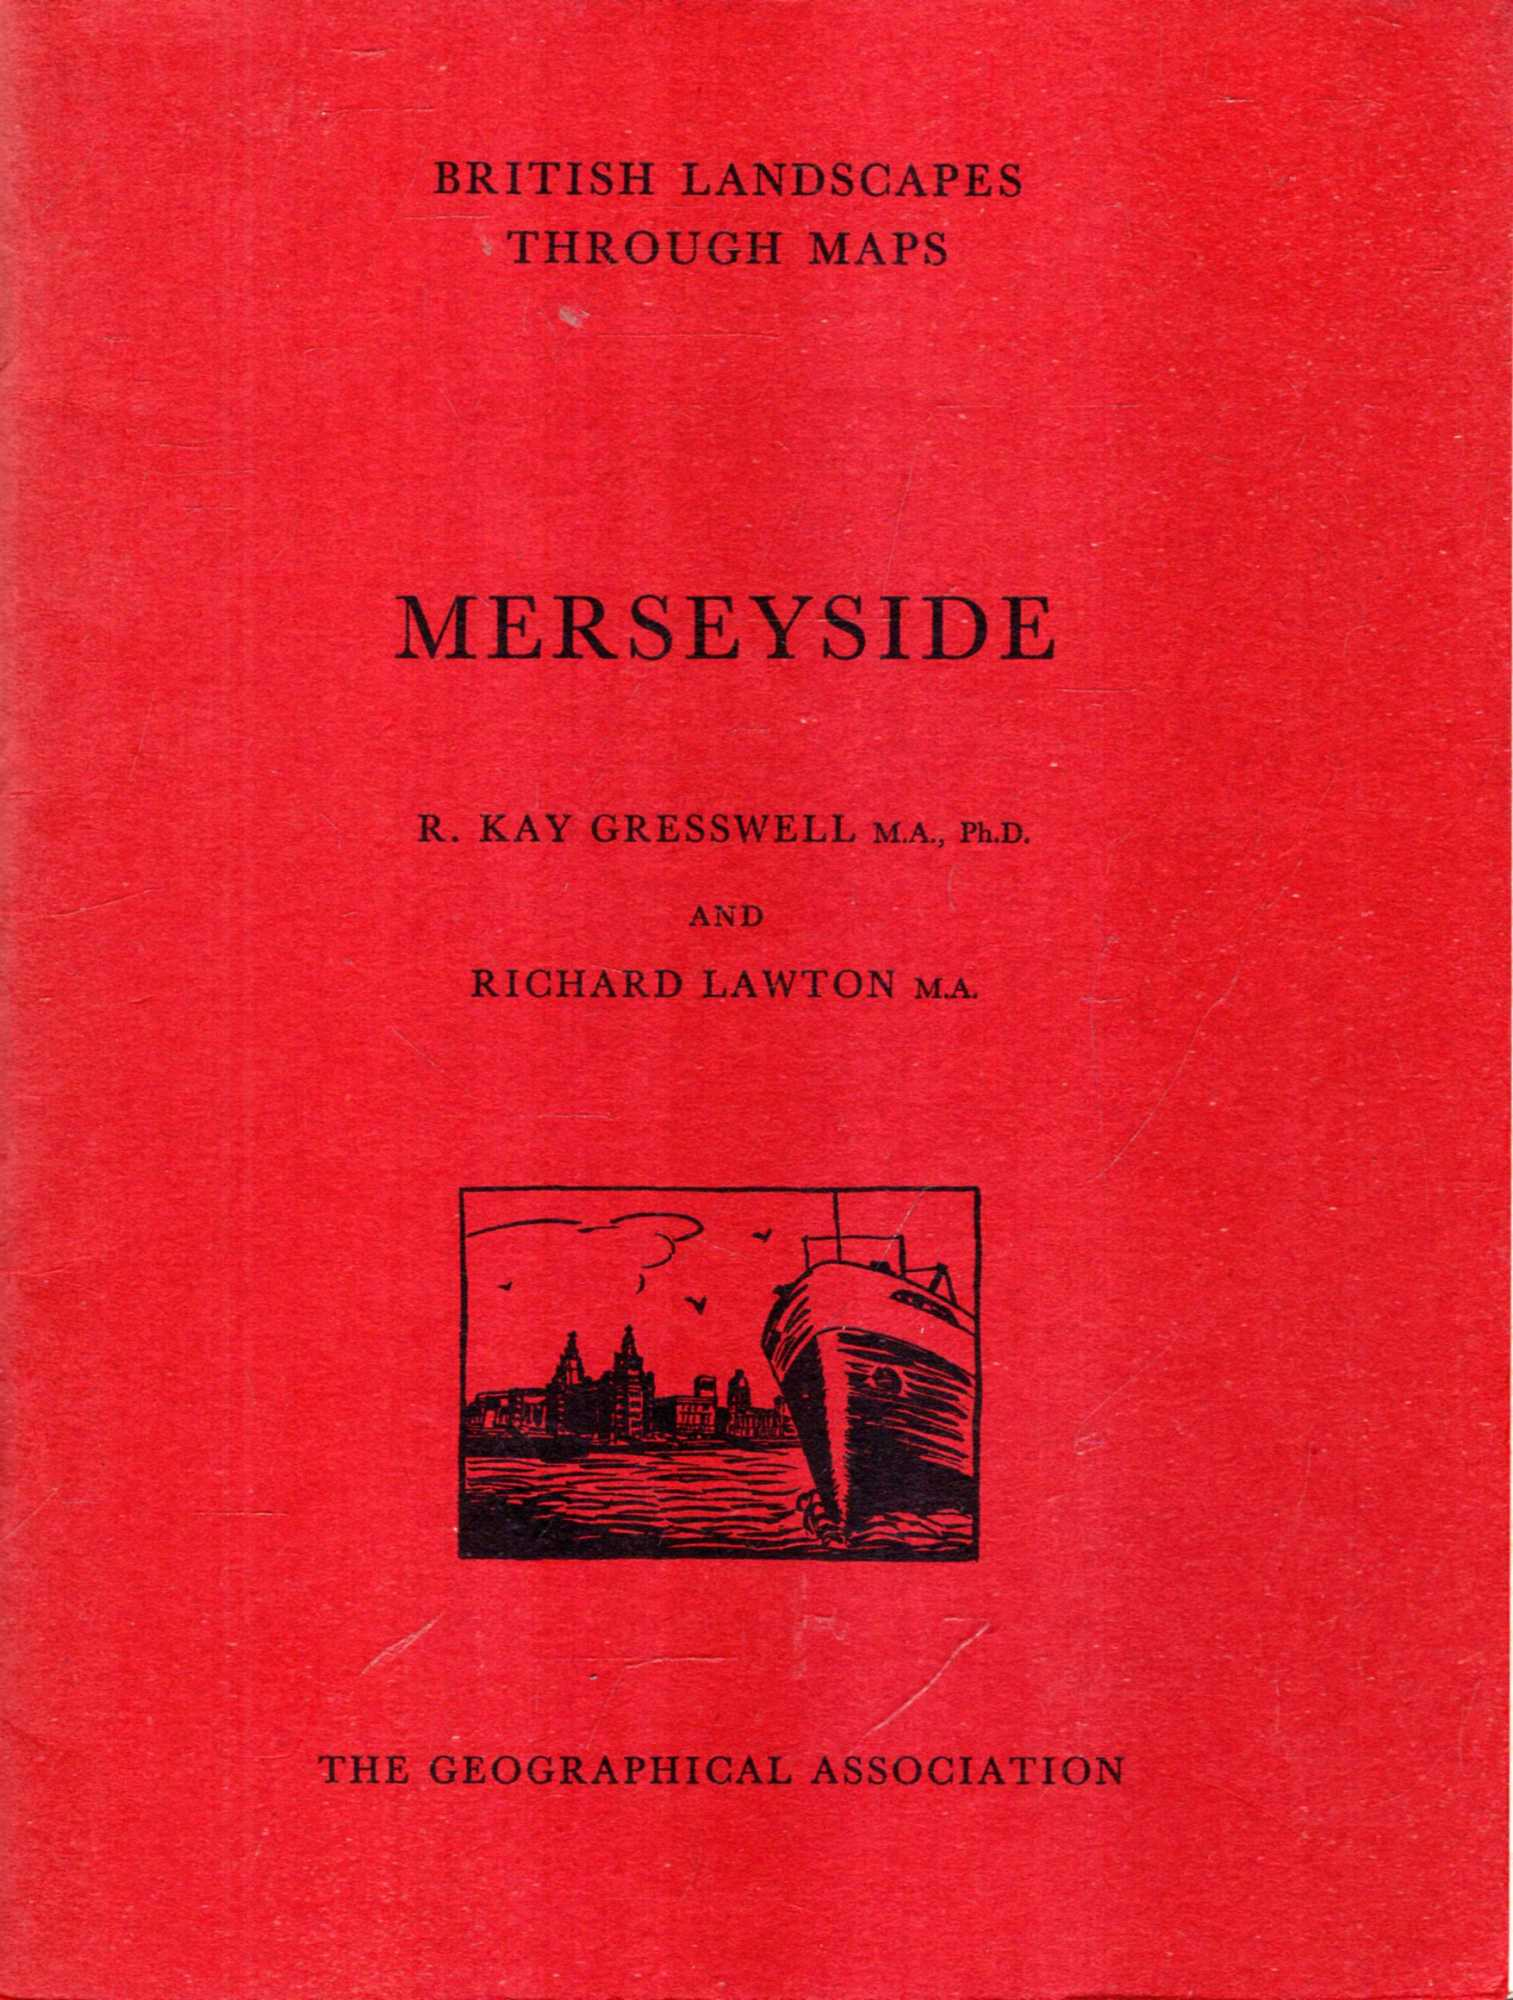 Image for British Landscapes Through Maps 6 : Merseyside, a description of the O.S. One-inch Sheet 100 : Liverpool